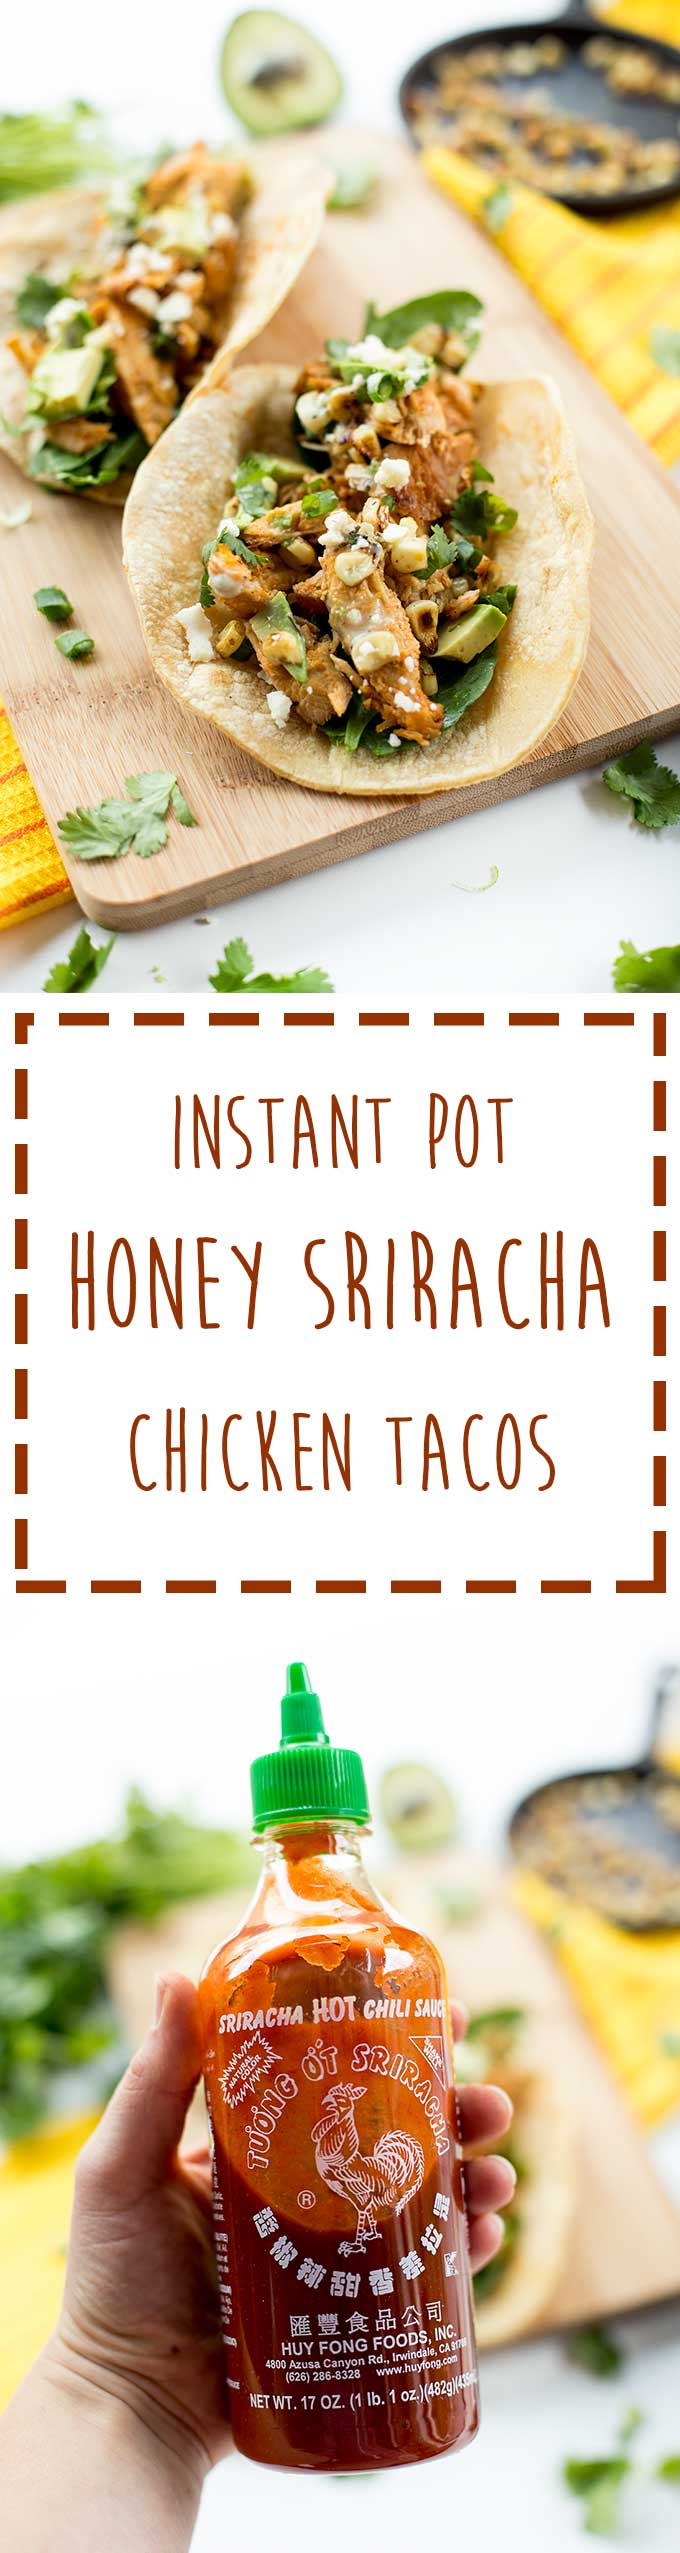 Instant Pot Honey Sriracha Tacos - just a handful of simple ingredients for these juicy, spicy chicken tacos. Wrapped in a warm corn tortilla and topped with avocado, blue cheese crumbles and cilantro.